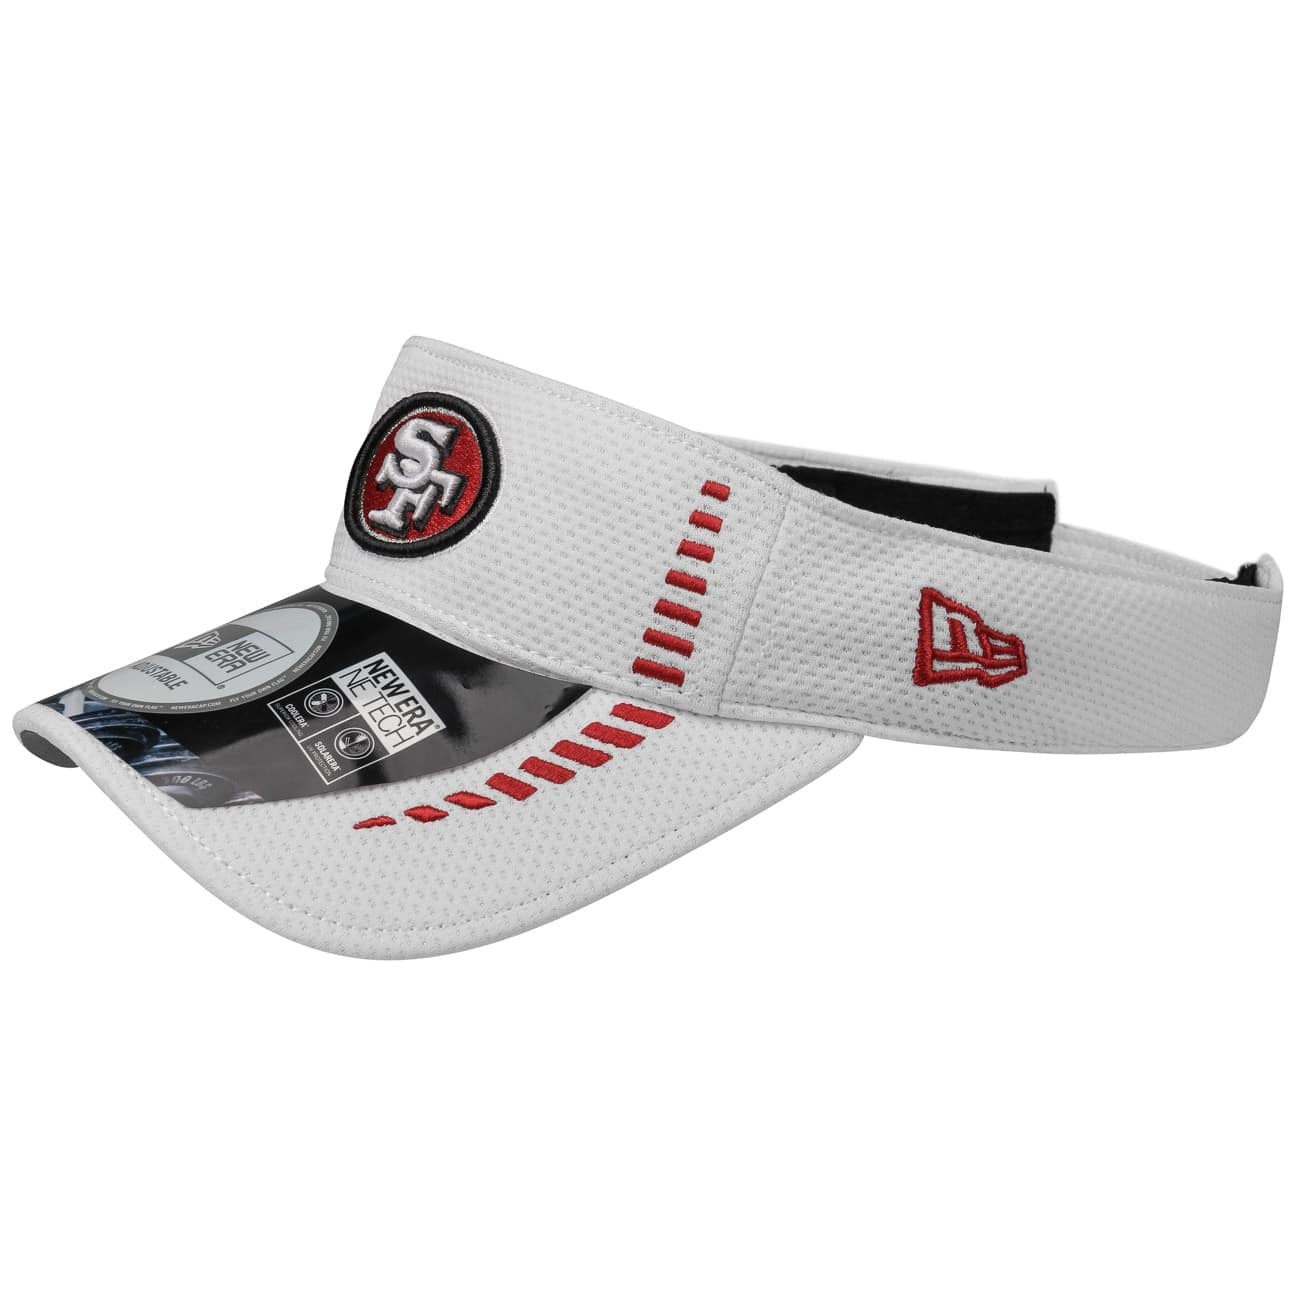 52dfebc24bc83 NFL San Francisco 49ers Visor by New Era - Gorras - sombreroshop.es